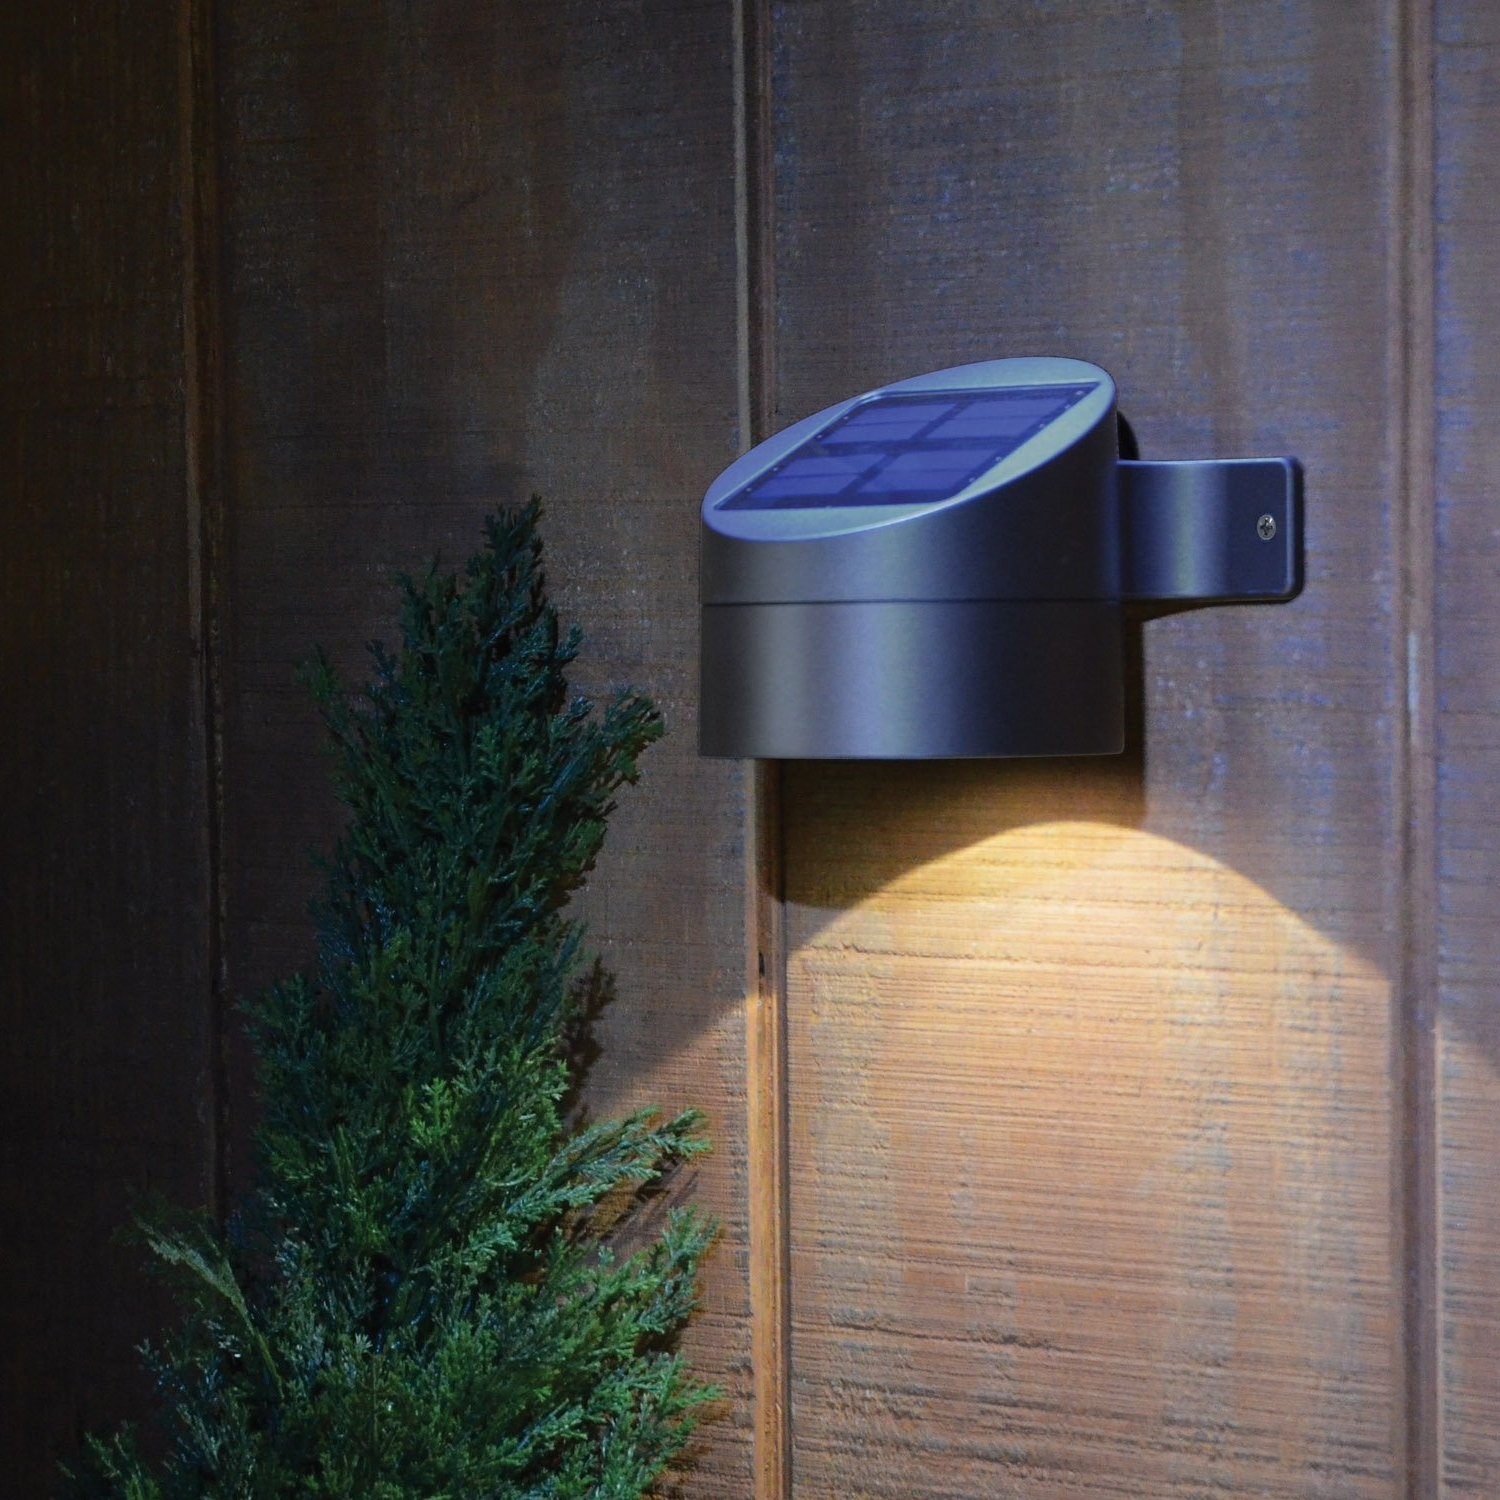 Famous Light : Home Accessories Stuff Solar Wall Mount Outdoor Lights In Solar Powered Outdoor Lights (View 2 of 20)